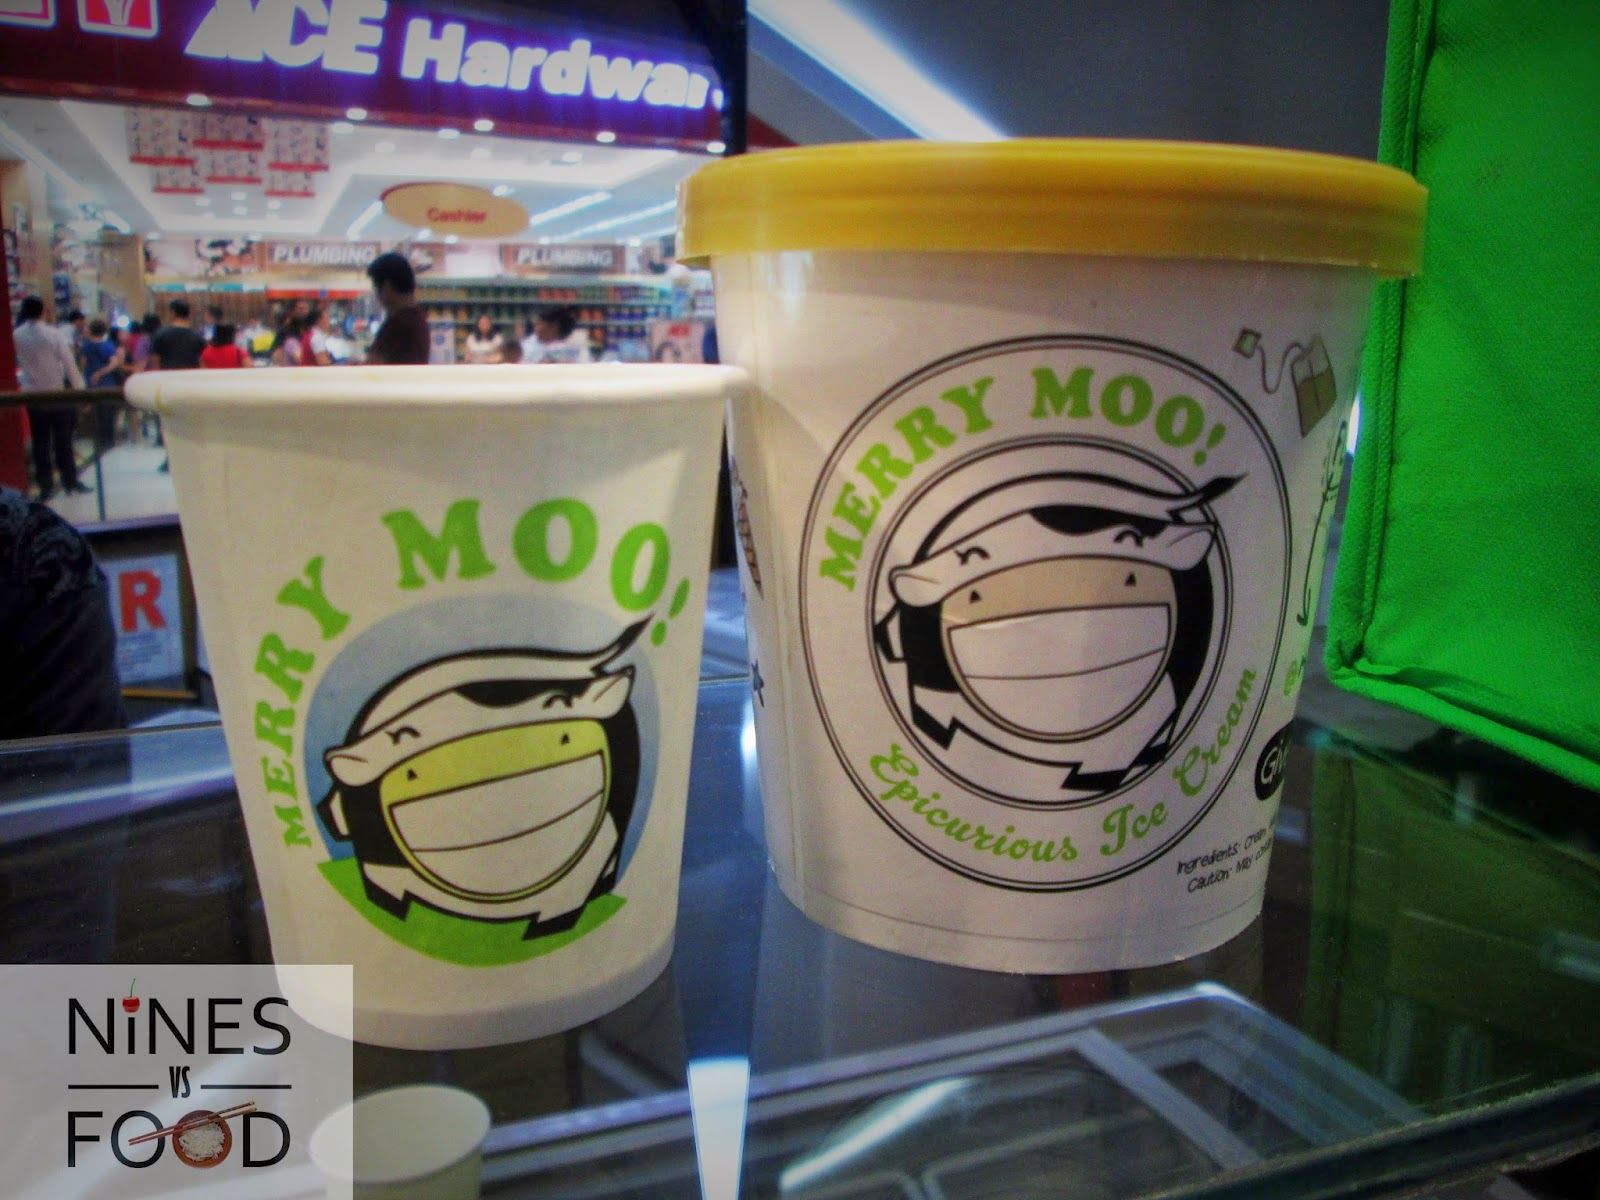 Nines vs. Food - Merry Moo Ice Cream SM Aura-6.jpg